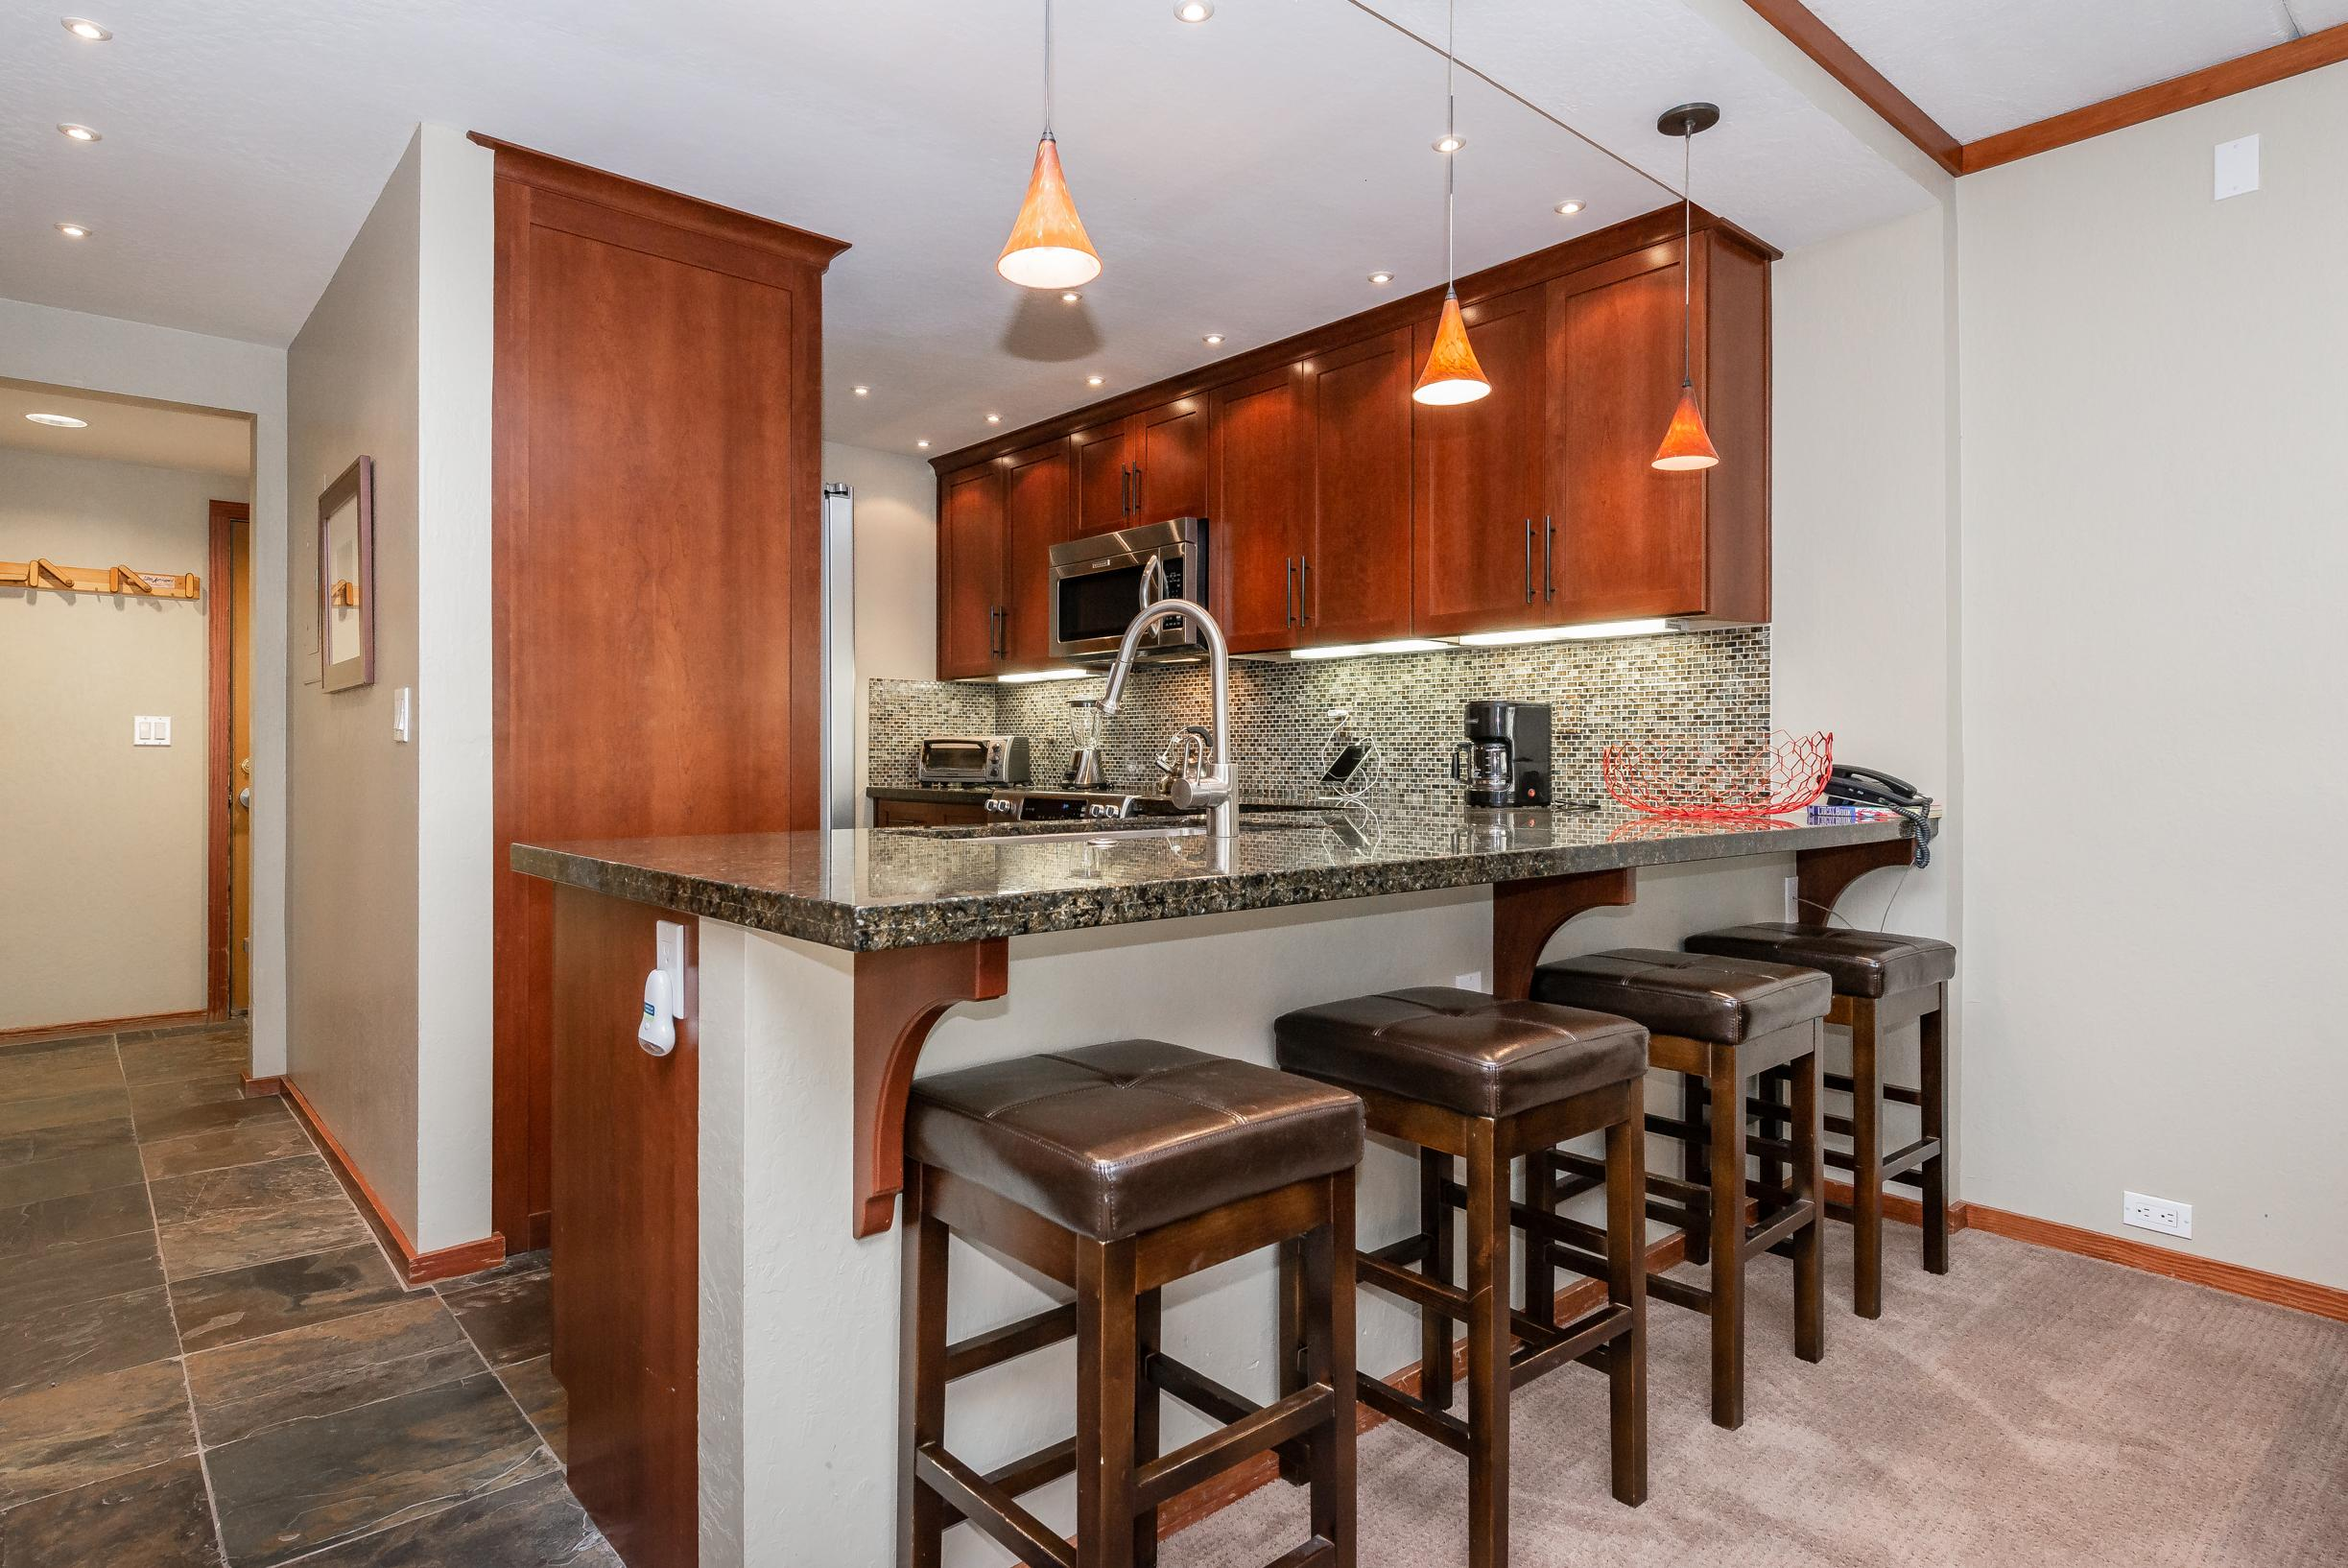 Cherry wood cabinetry and granite countertops outfit the well-equipped kitchen. Keep the chef company at the kitchen bar with seating for 4.